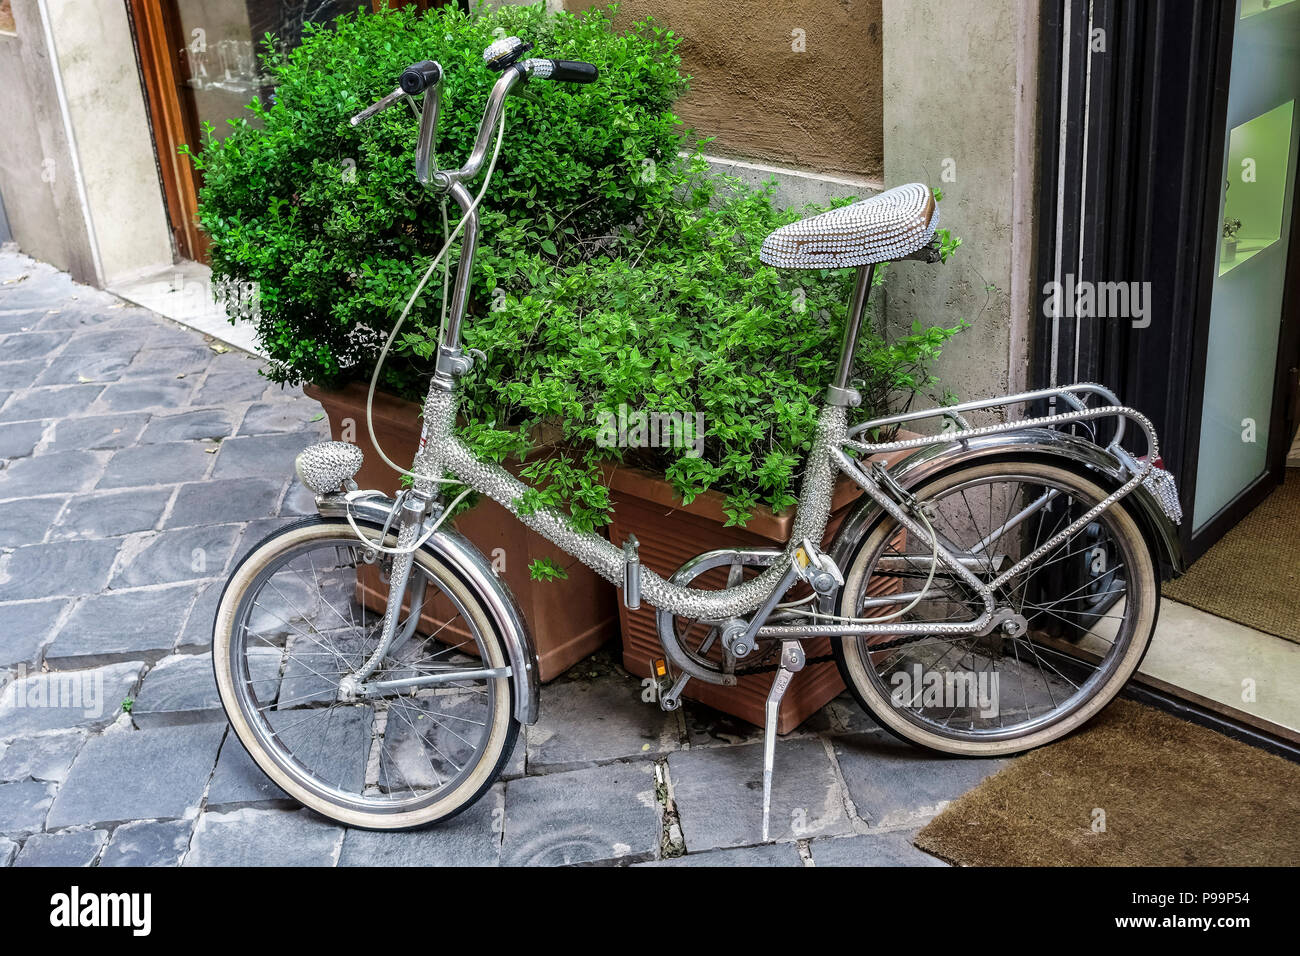 3f8aaa59848 Rhinestone bike parked in front of a shop. Alternative ecological tran  sport. Green concept